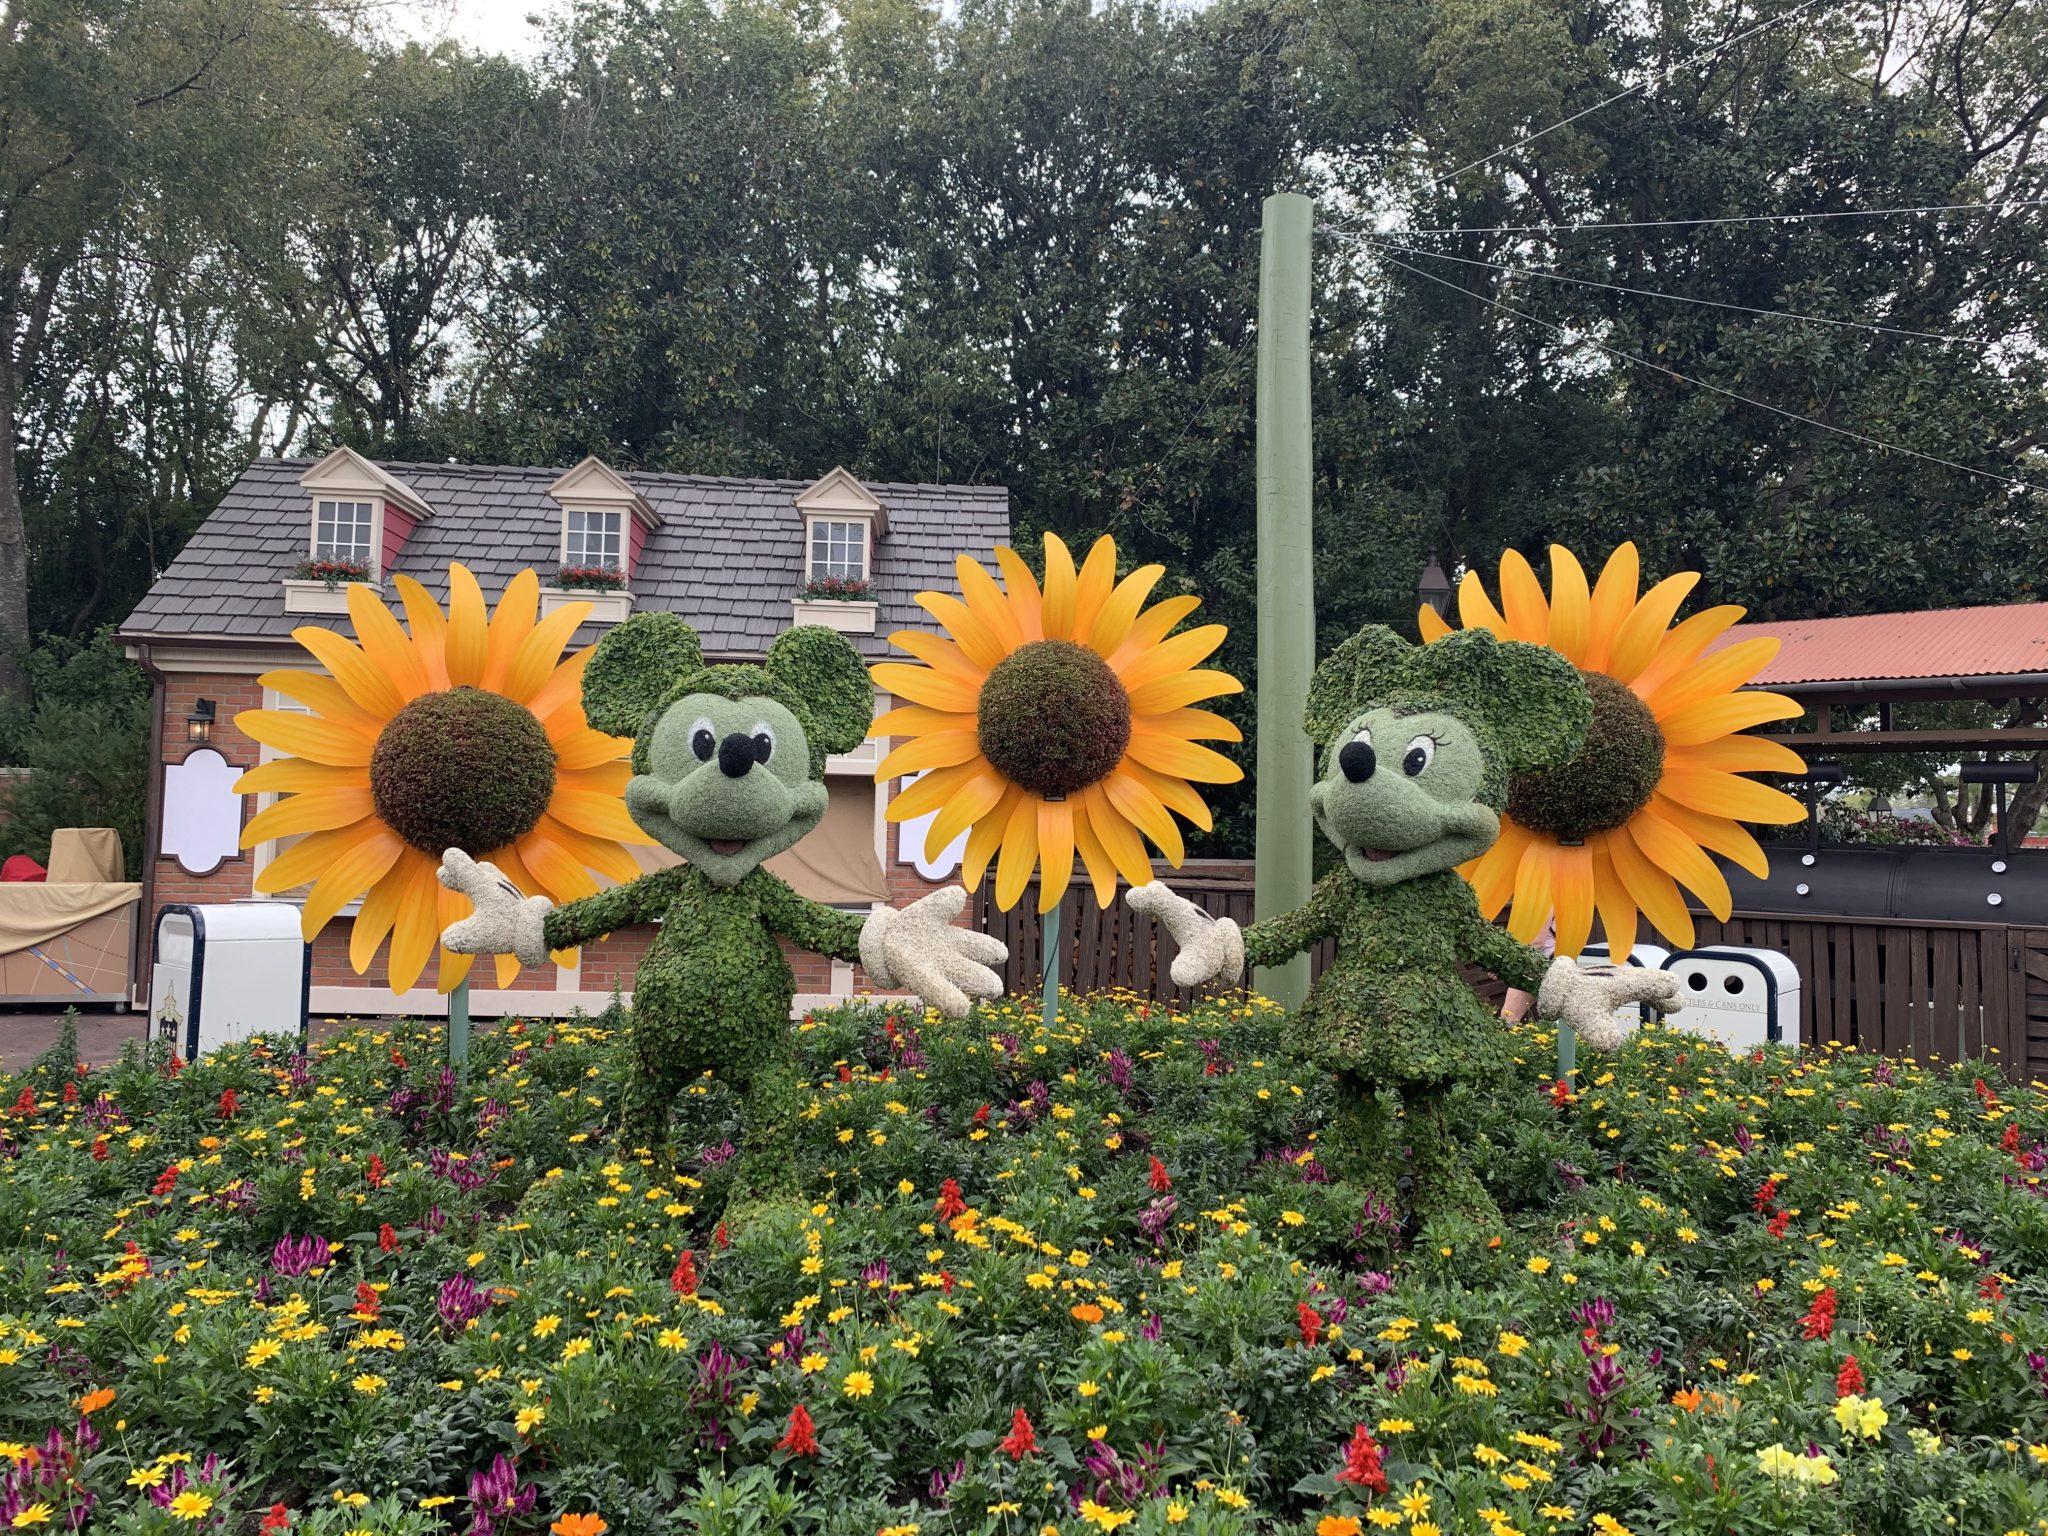 Mickey and Minnie topiaries at the Epcot Flower and Garden Festival